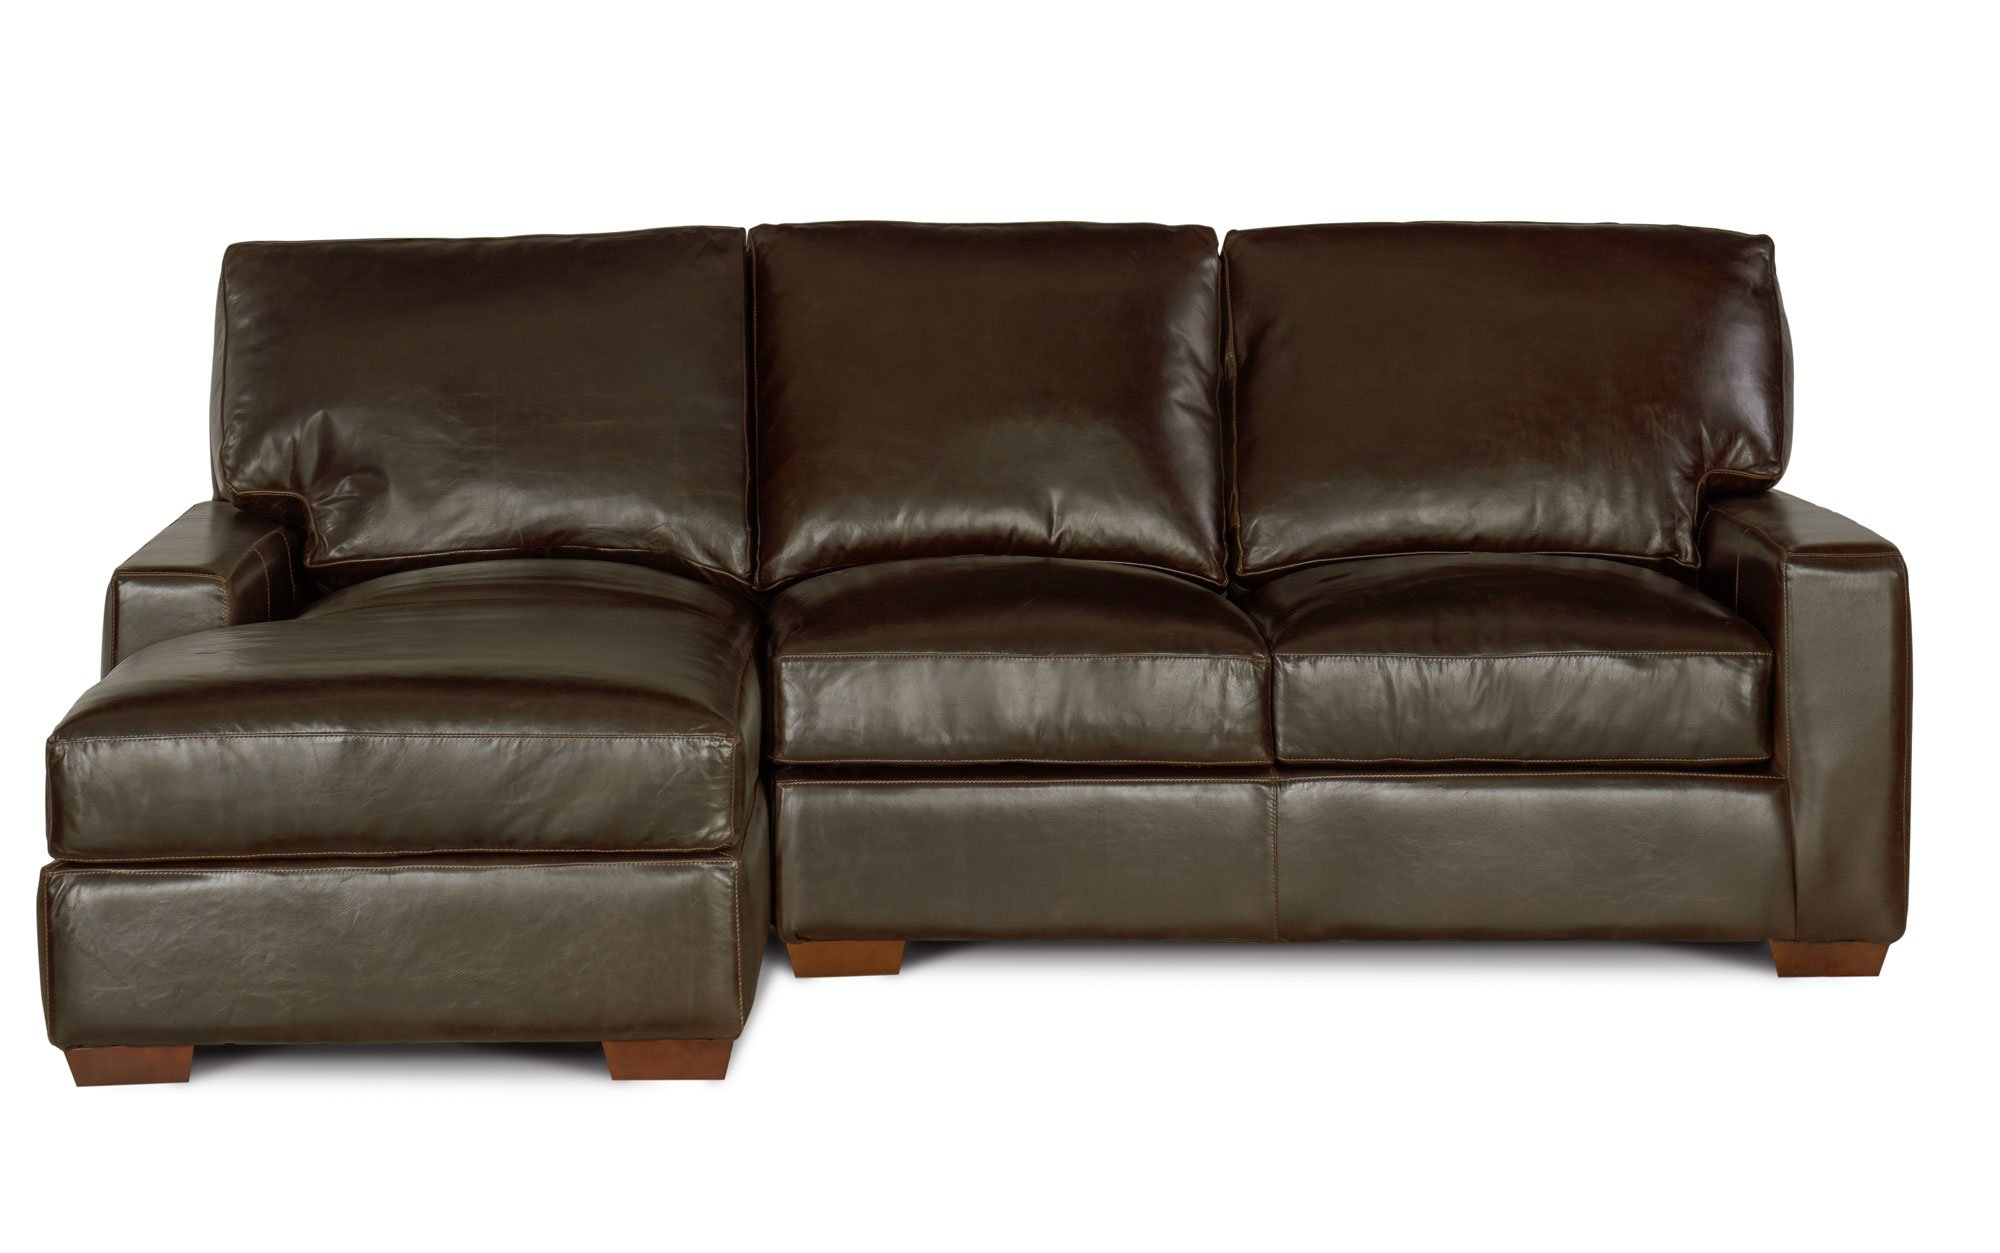 Mayfair leather sofas sofa menzilperde net for Contemporary leather sofa